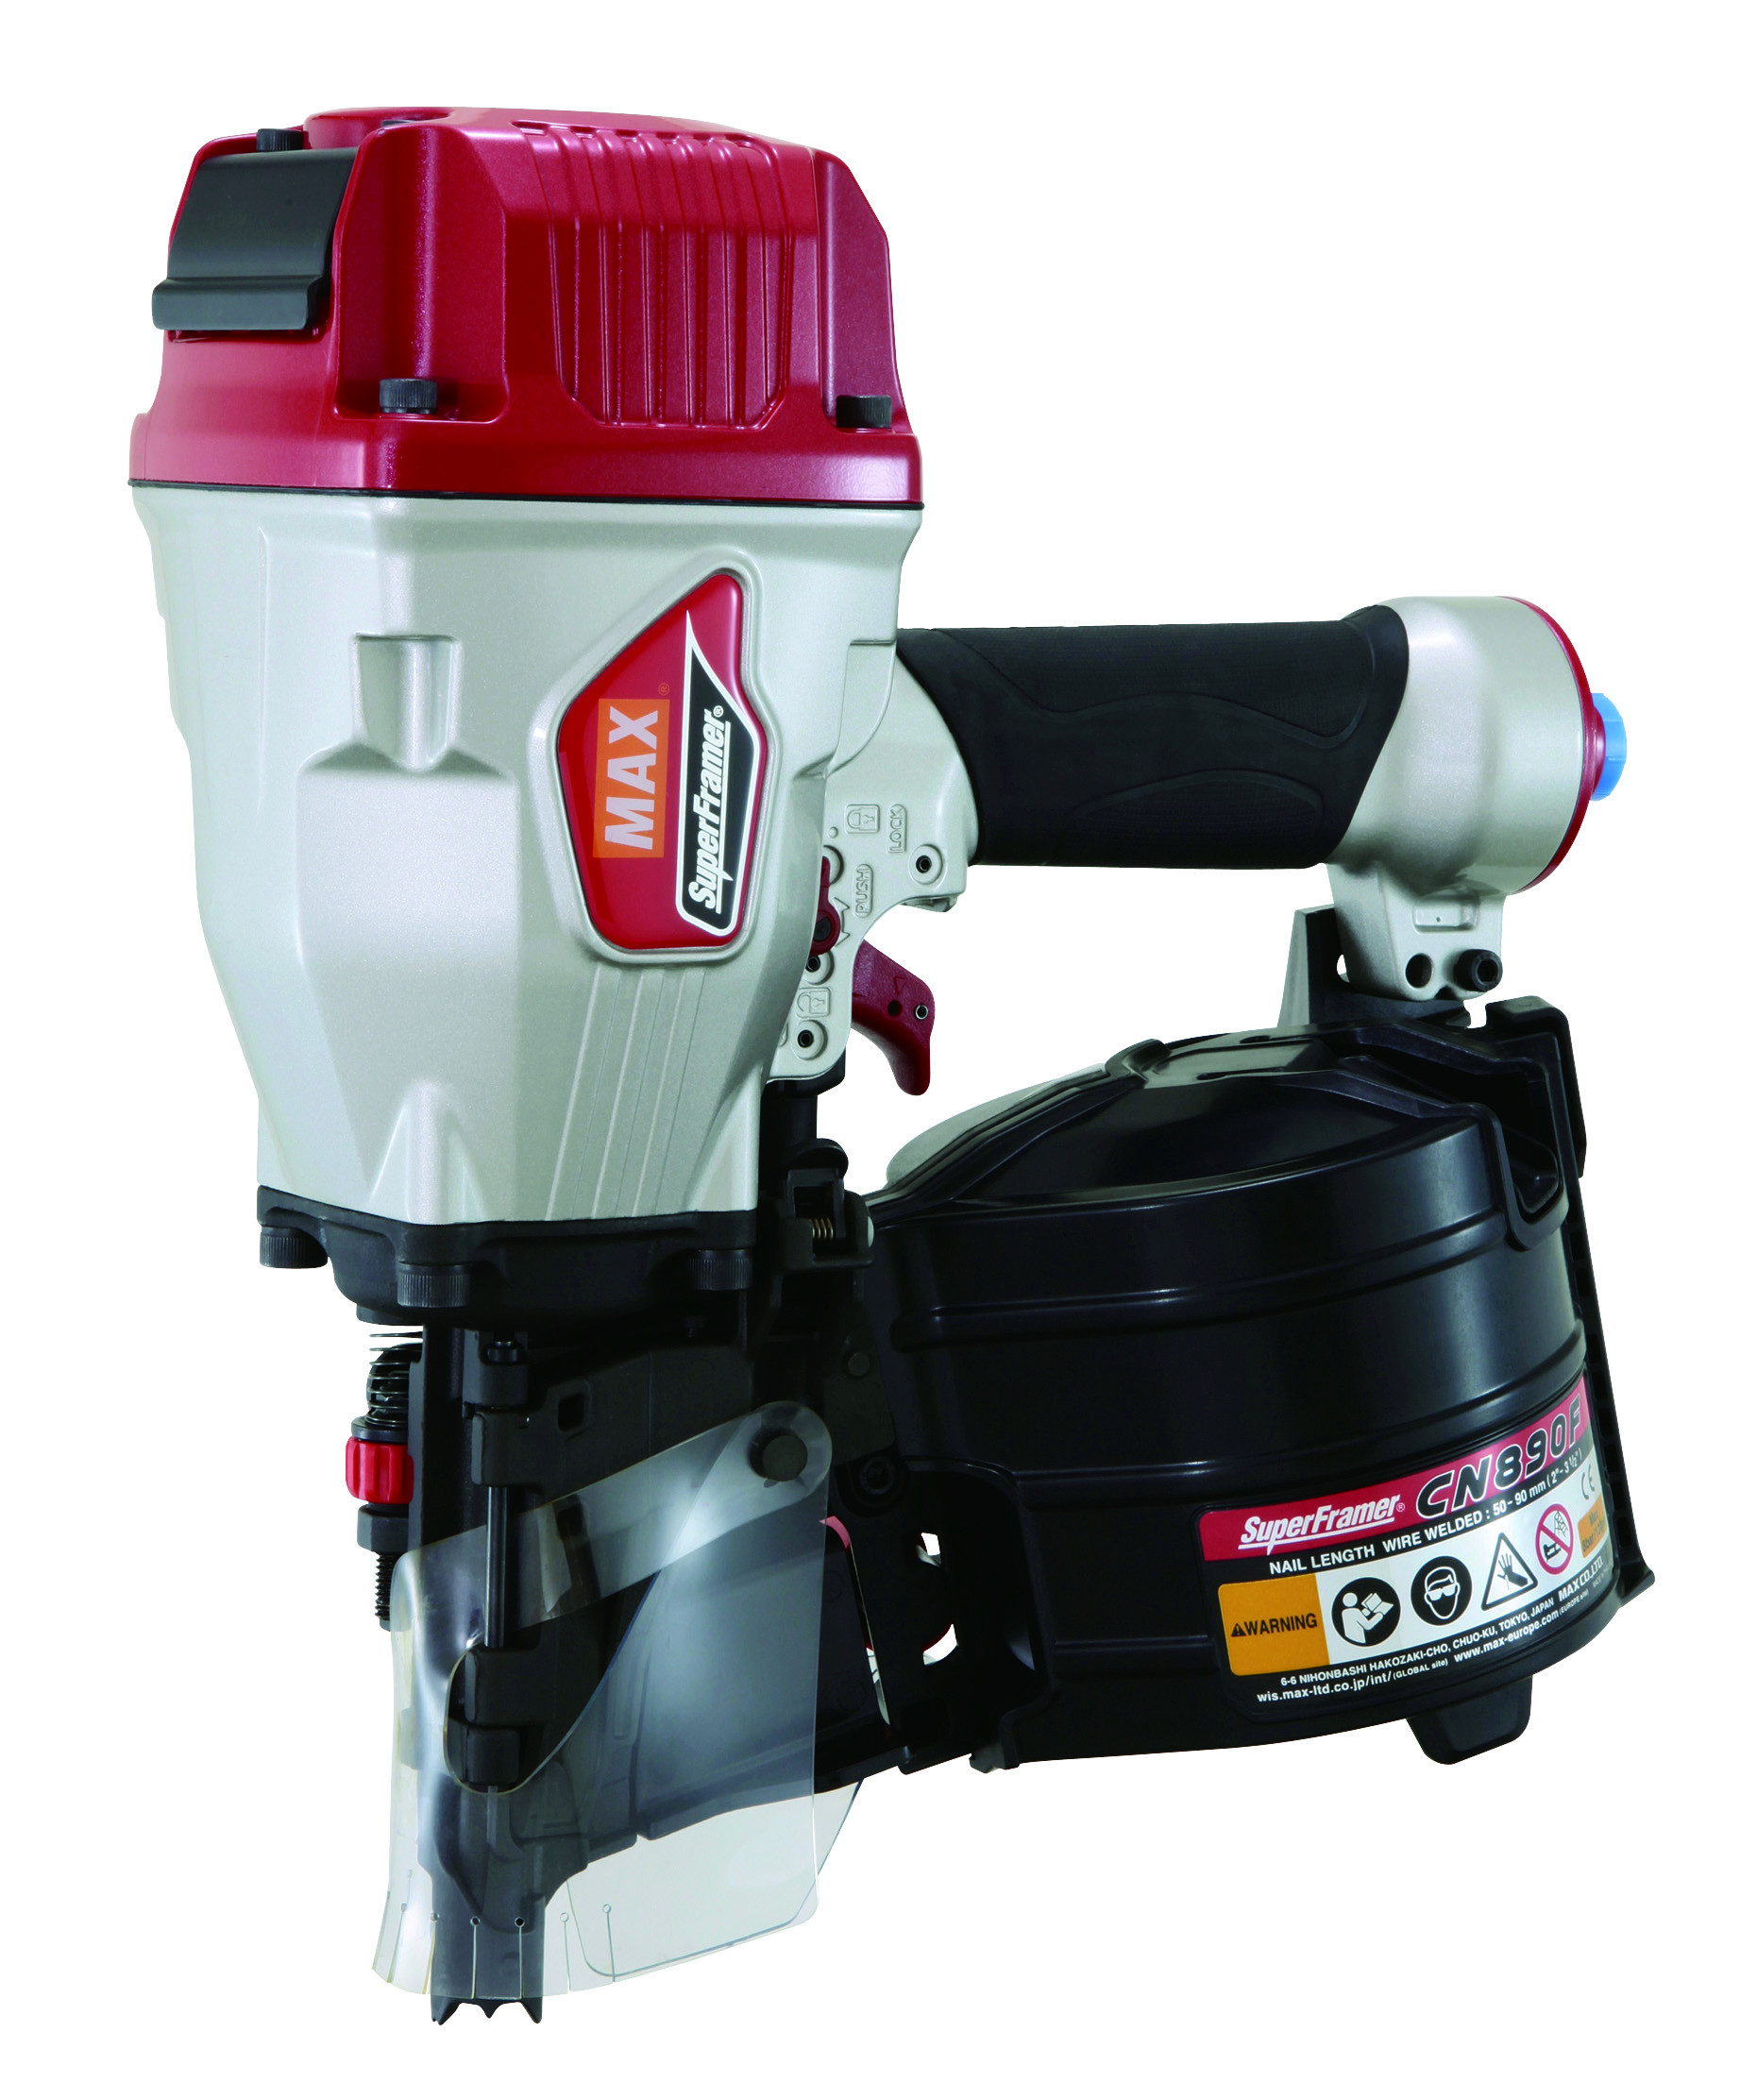 used hardwood floor nailers for sale of construction coil nailers pertaining to framing coil nailer